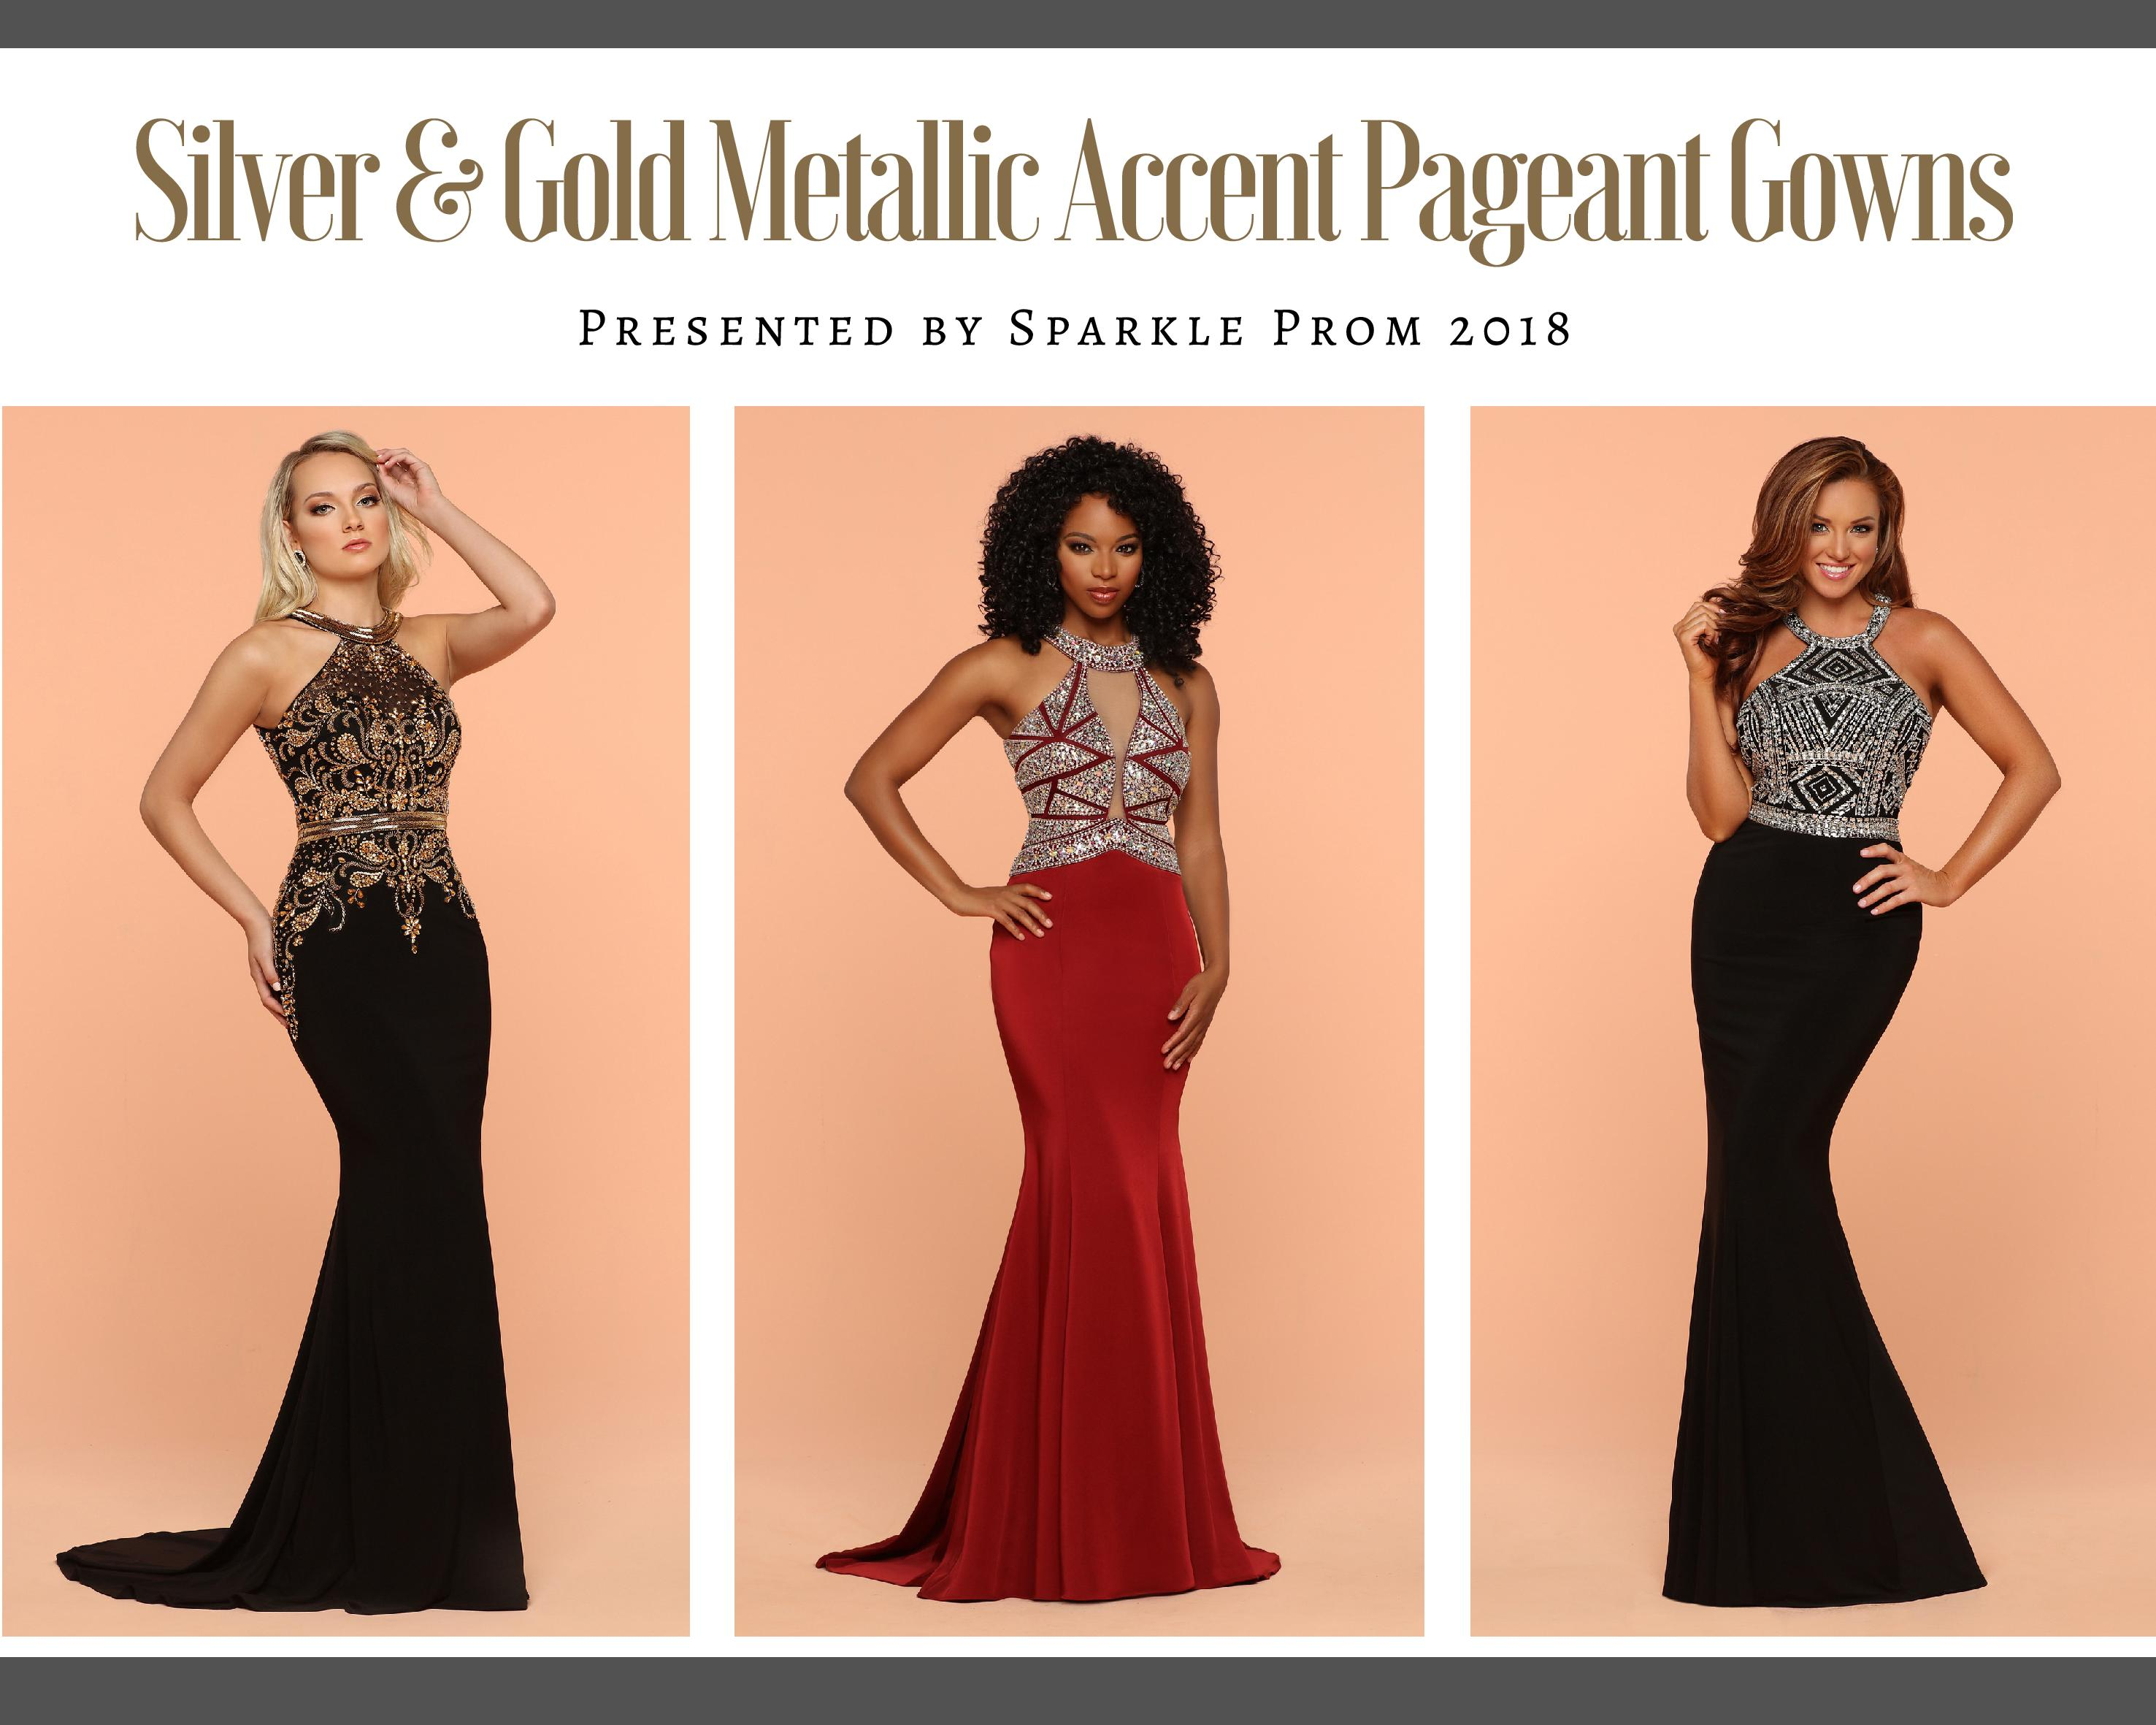 Pageant Gowns